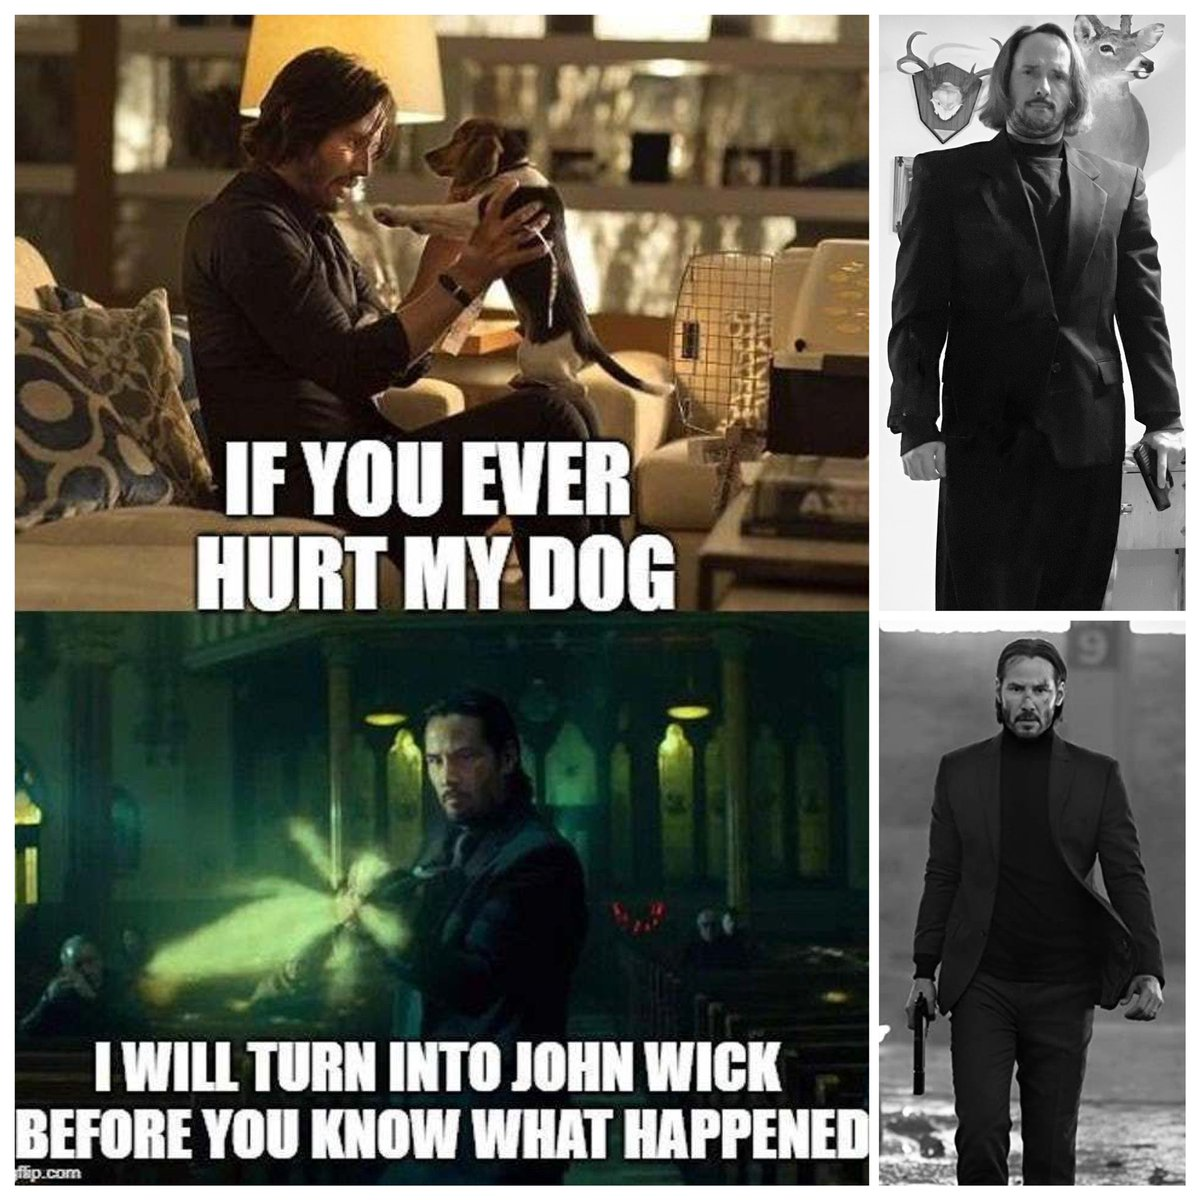 """I came across this Keanu Reeves' """"John Wick"""" meme, and I thought it was pretty cool since I'll do anything to protect my dogs.  So, I put on my black suit and did my best impression of him.  #MrLanSir #dogsoftwitter #sheltie #shelties #dogs #LanSir #dog #keanureeves #johnwick"""